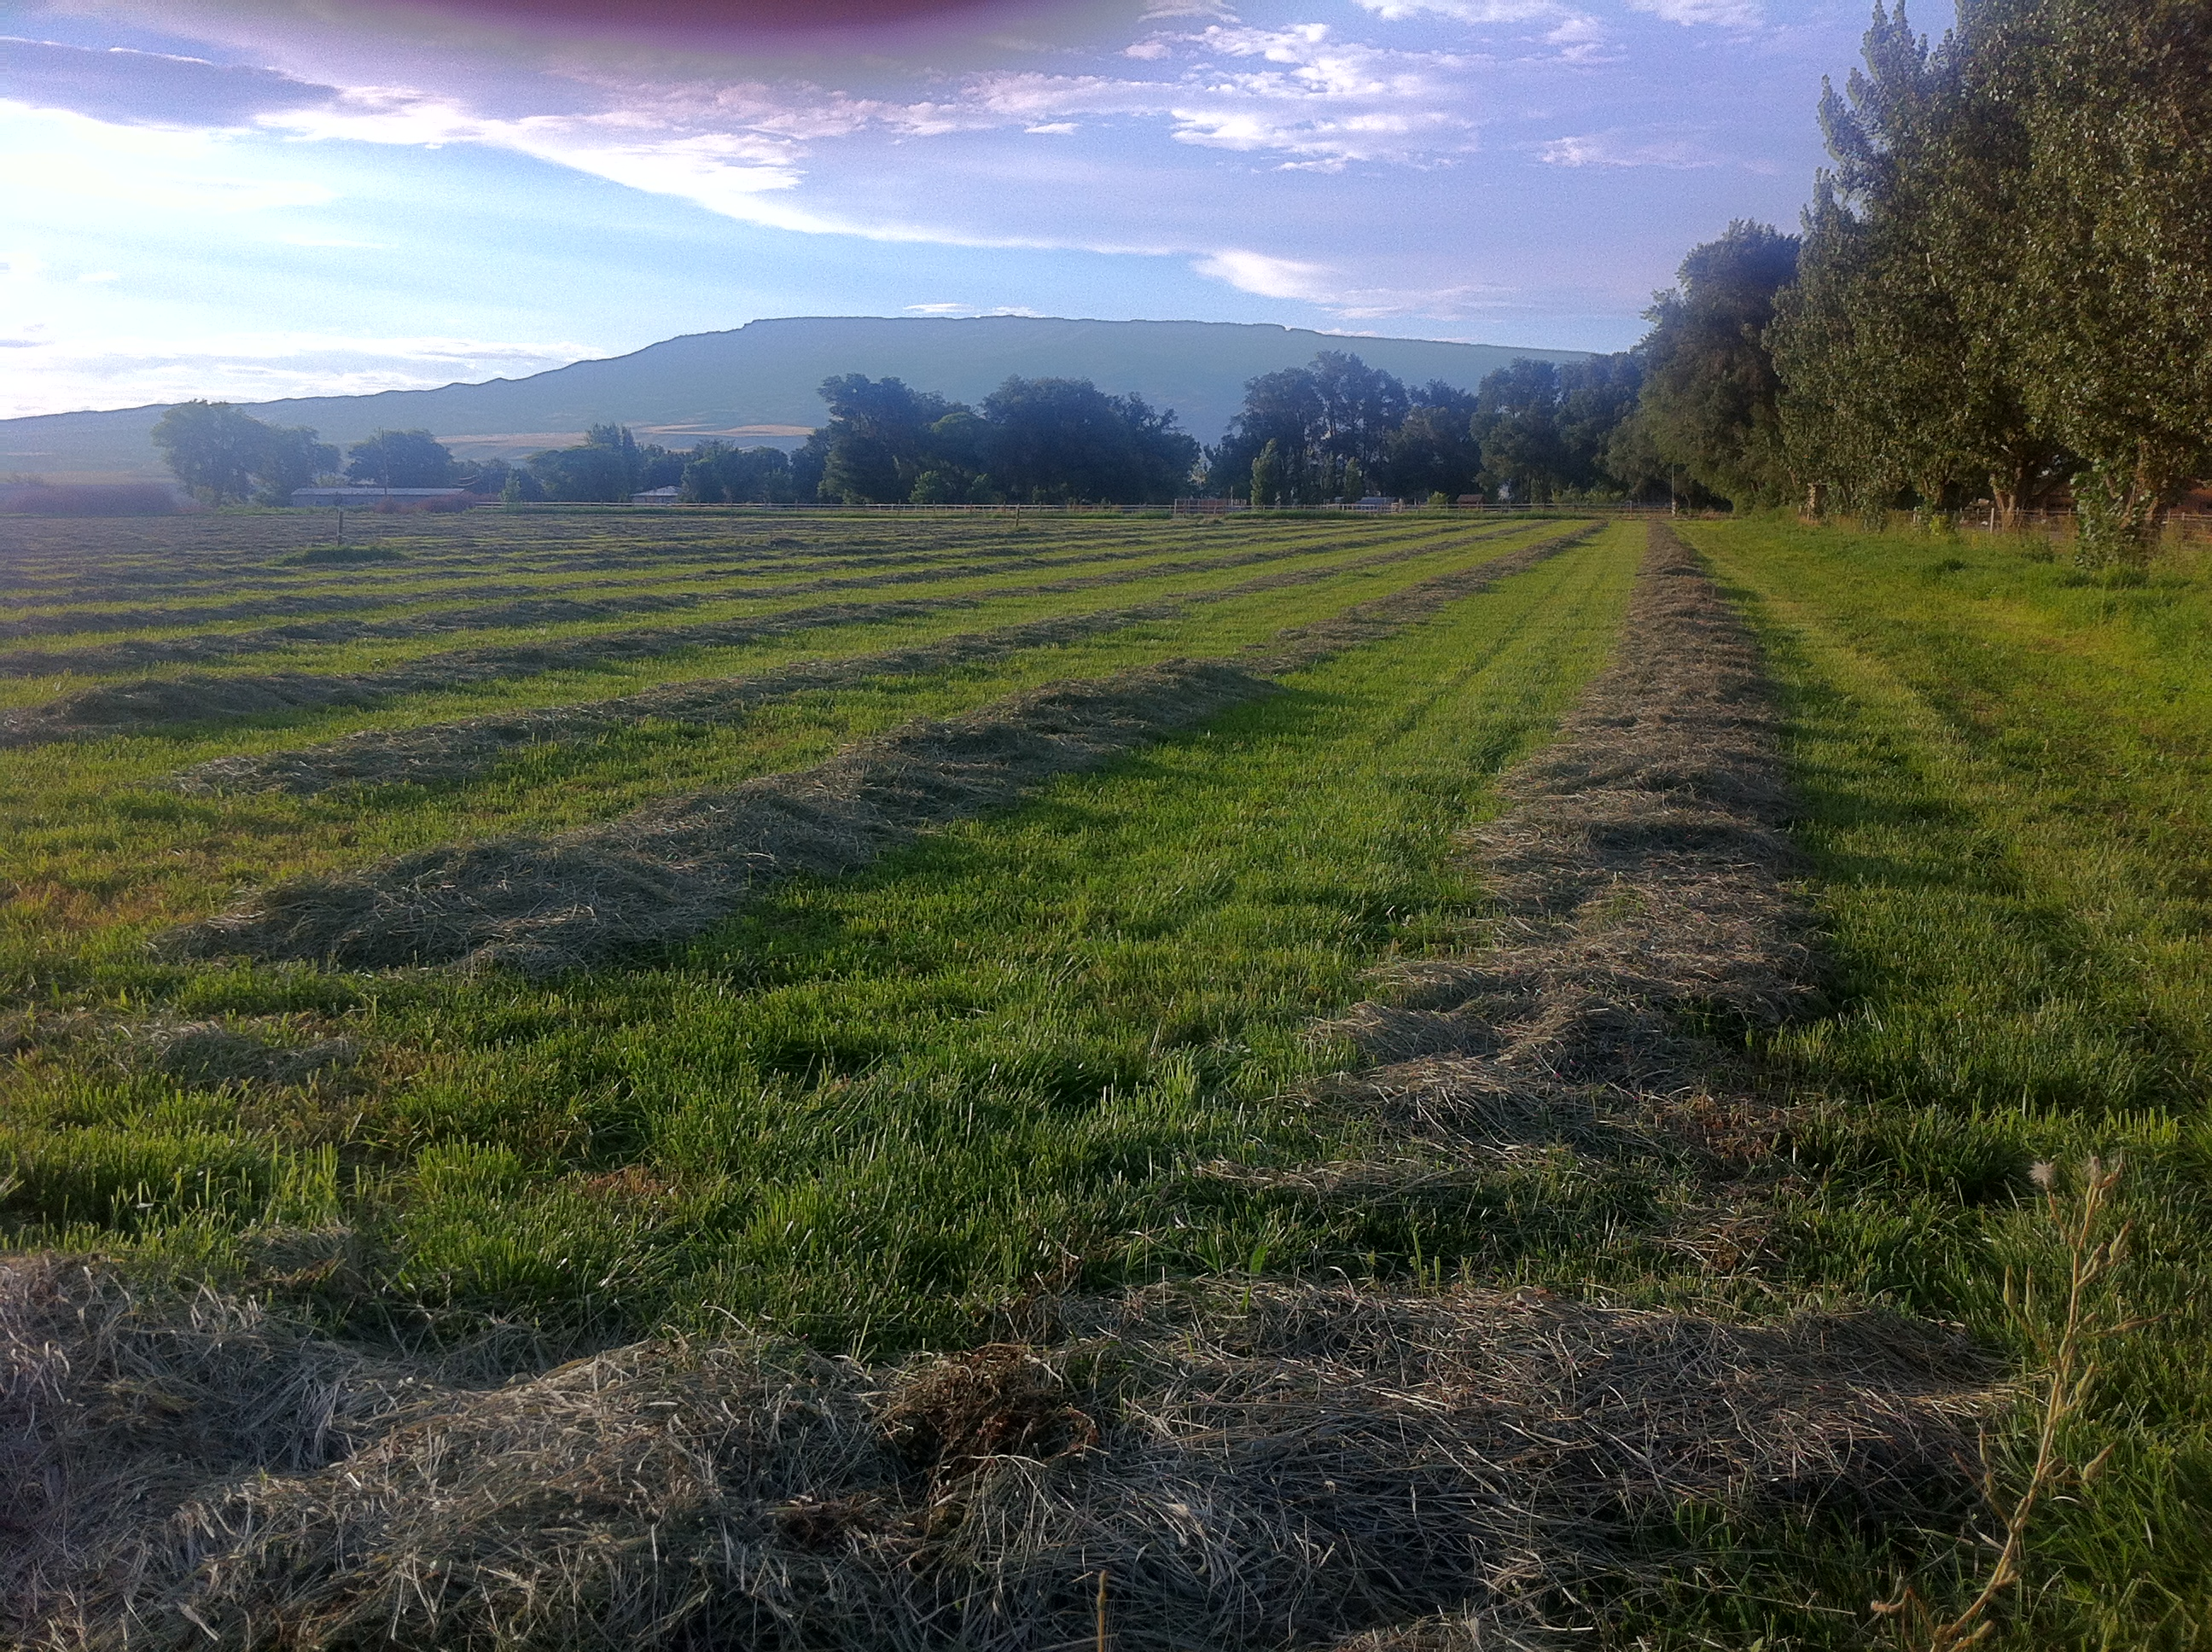 Alfalfa ready to be baled.